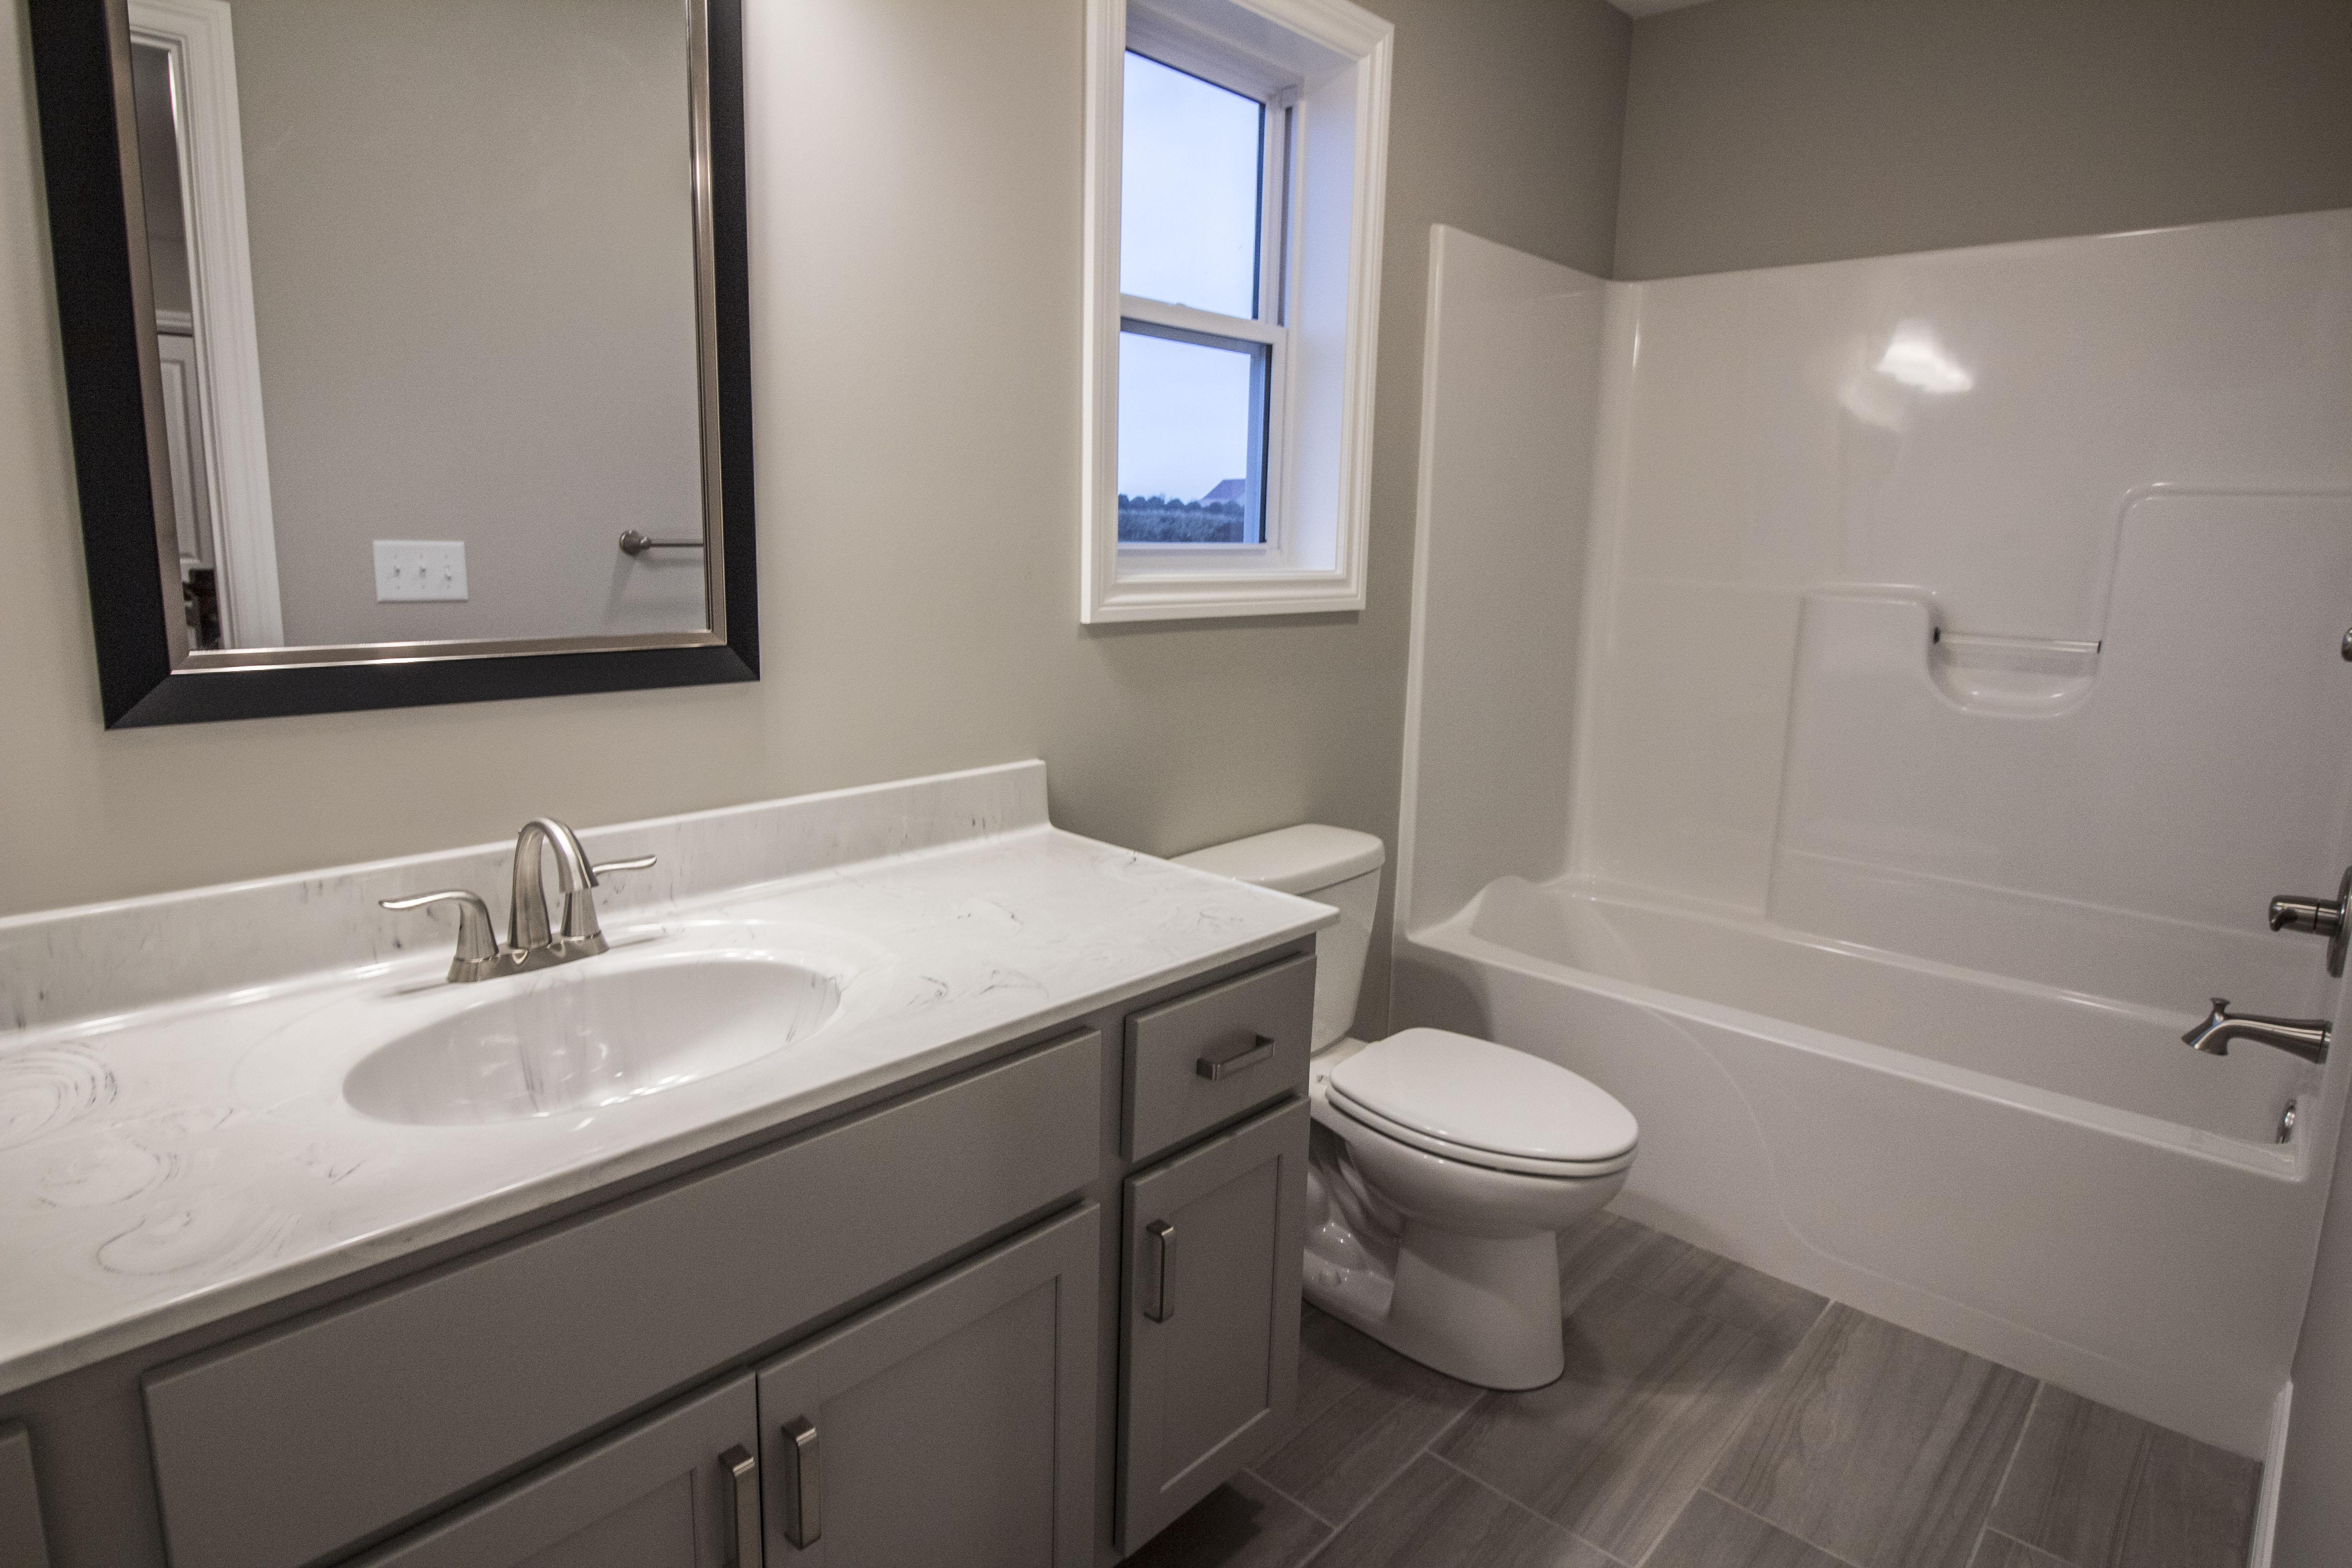 Bathroom featured in the Ridgeland 2 By Unlimited Homes in Champaign-Urbana, IL